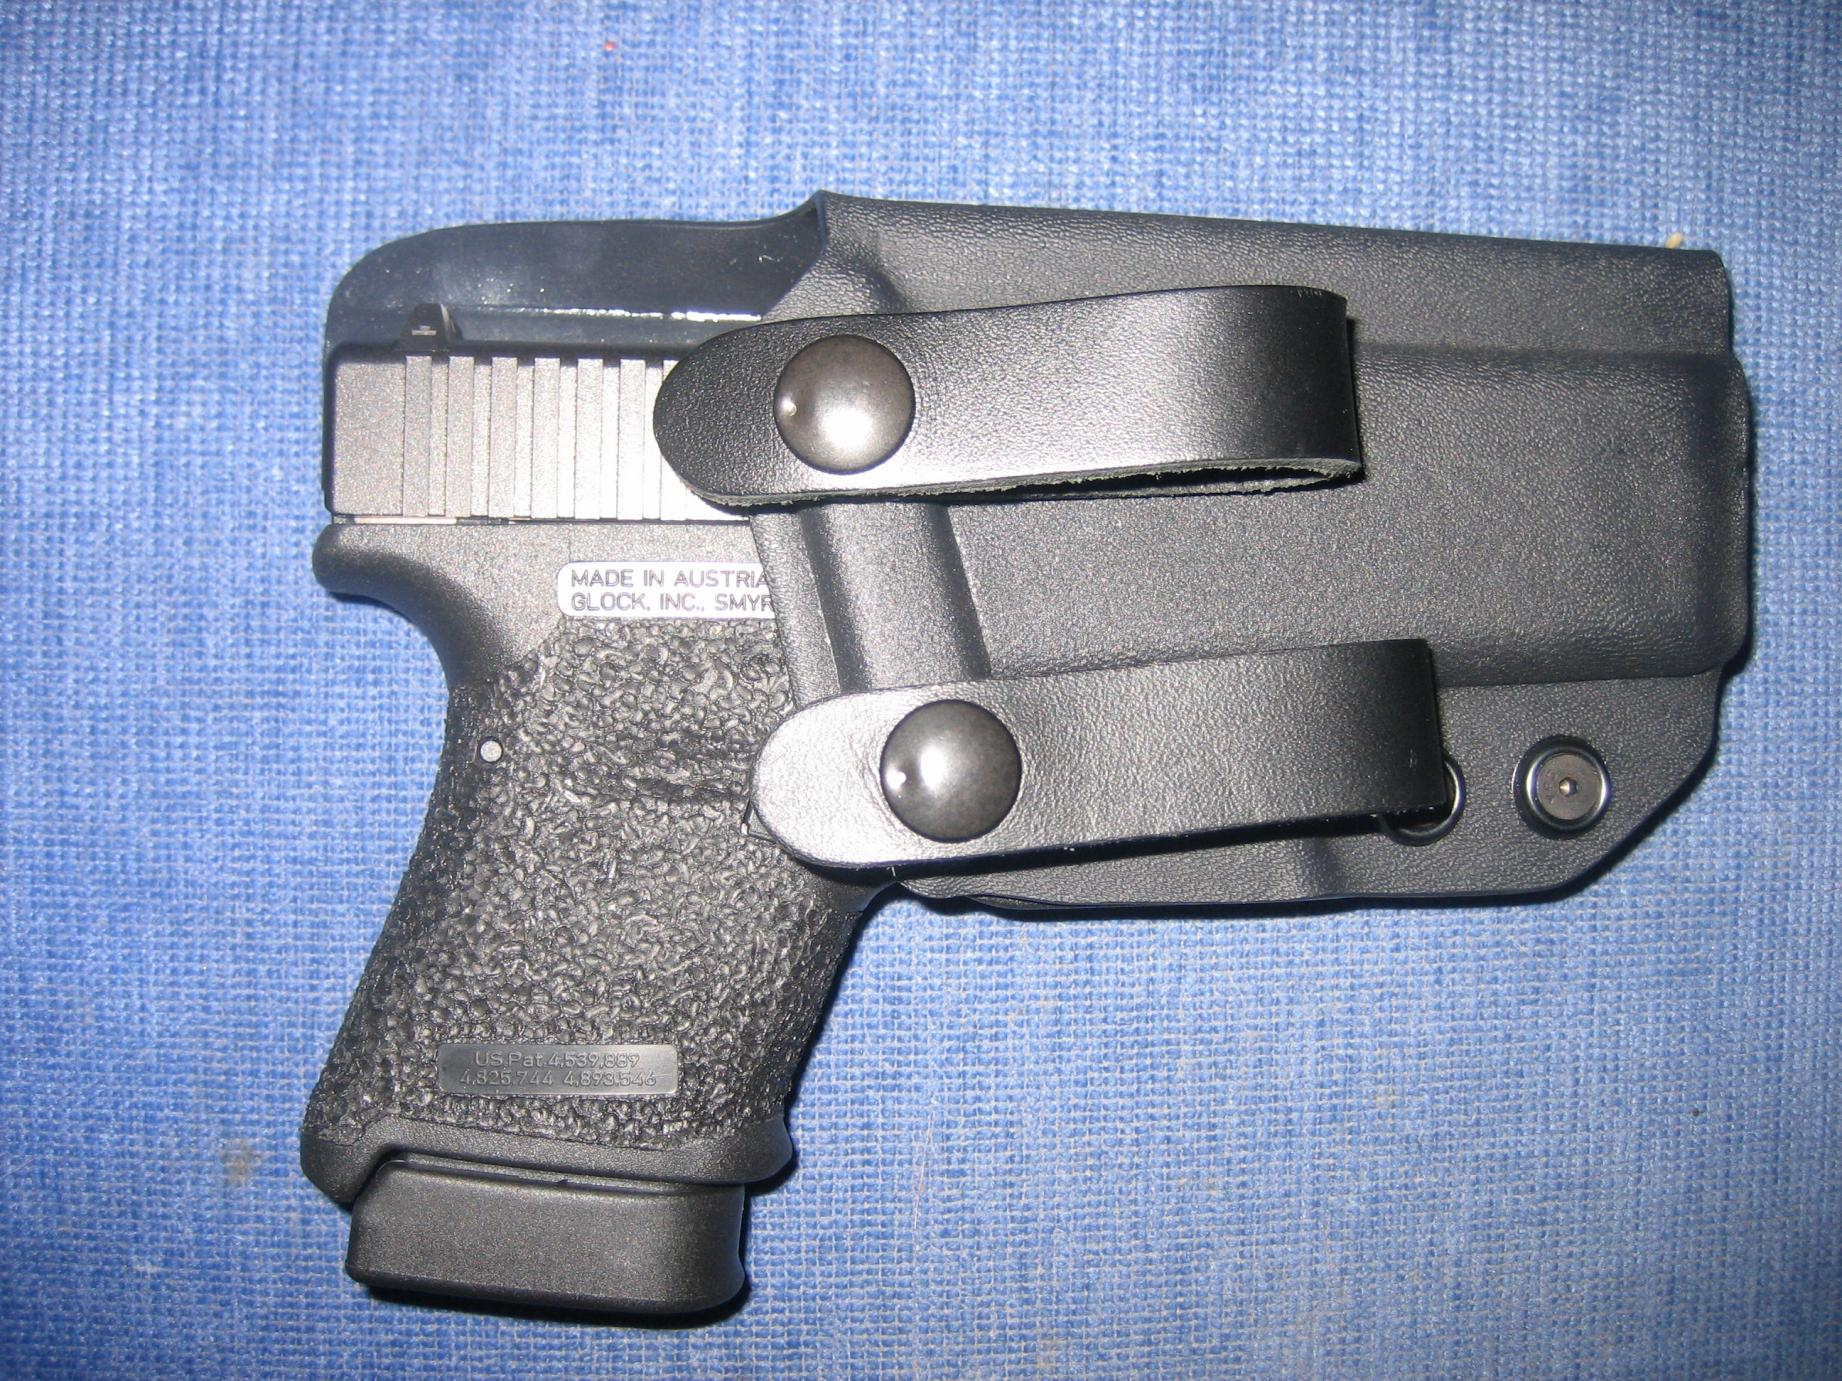 Glock G36 w/ grip reduction-grip-reduction-007.jpg